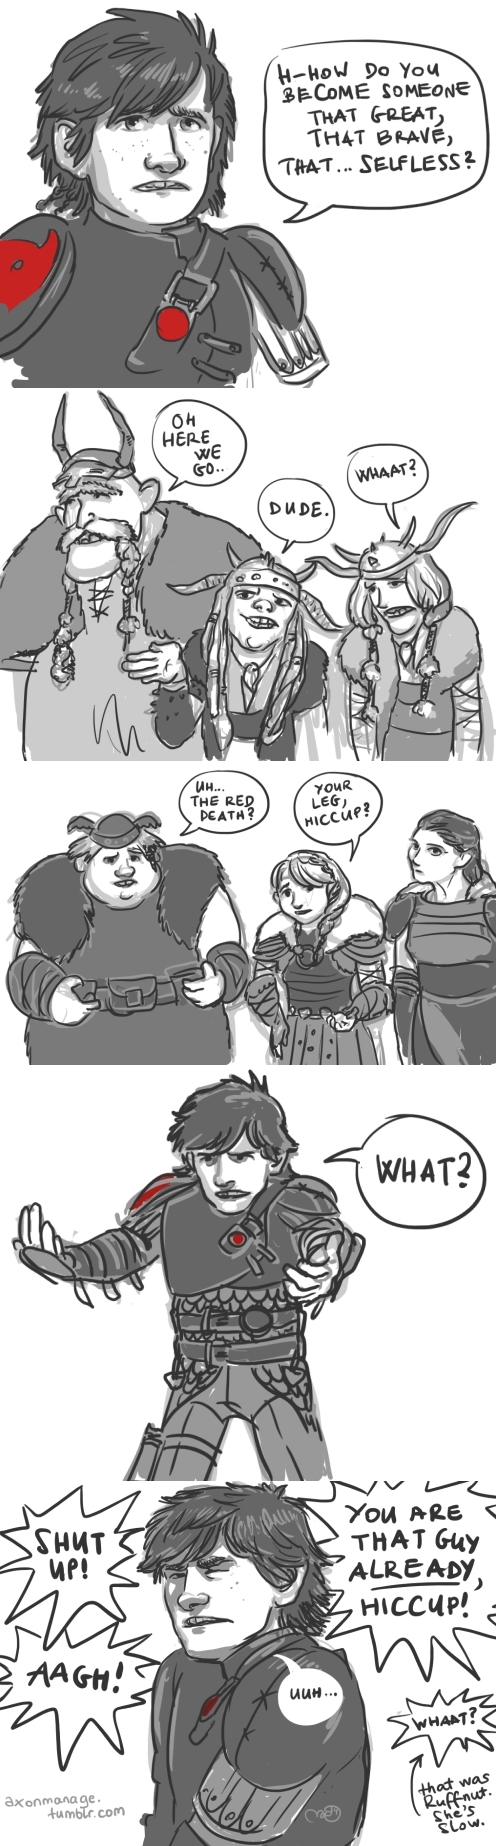 Stoick had a huge influence on Hiccup, who is more selfless than he knows. Once Stoick started really being a father, Hiccup immediately took him up as a role model. (You Are That Guy Already by axondrive on deviantART)